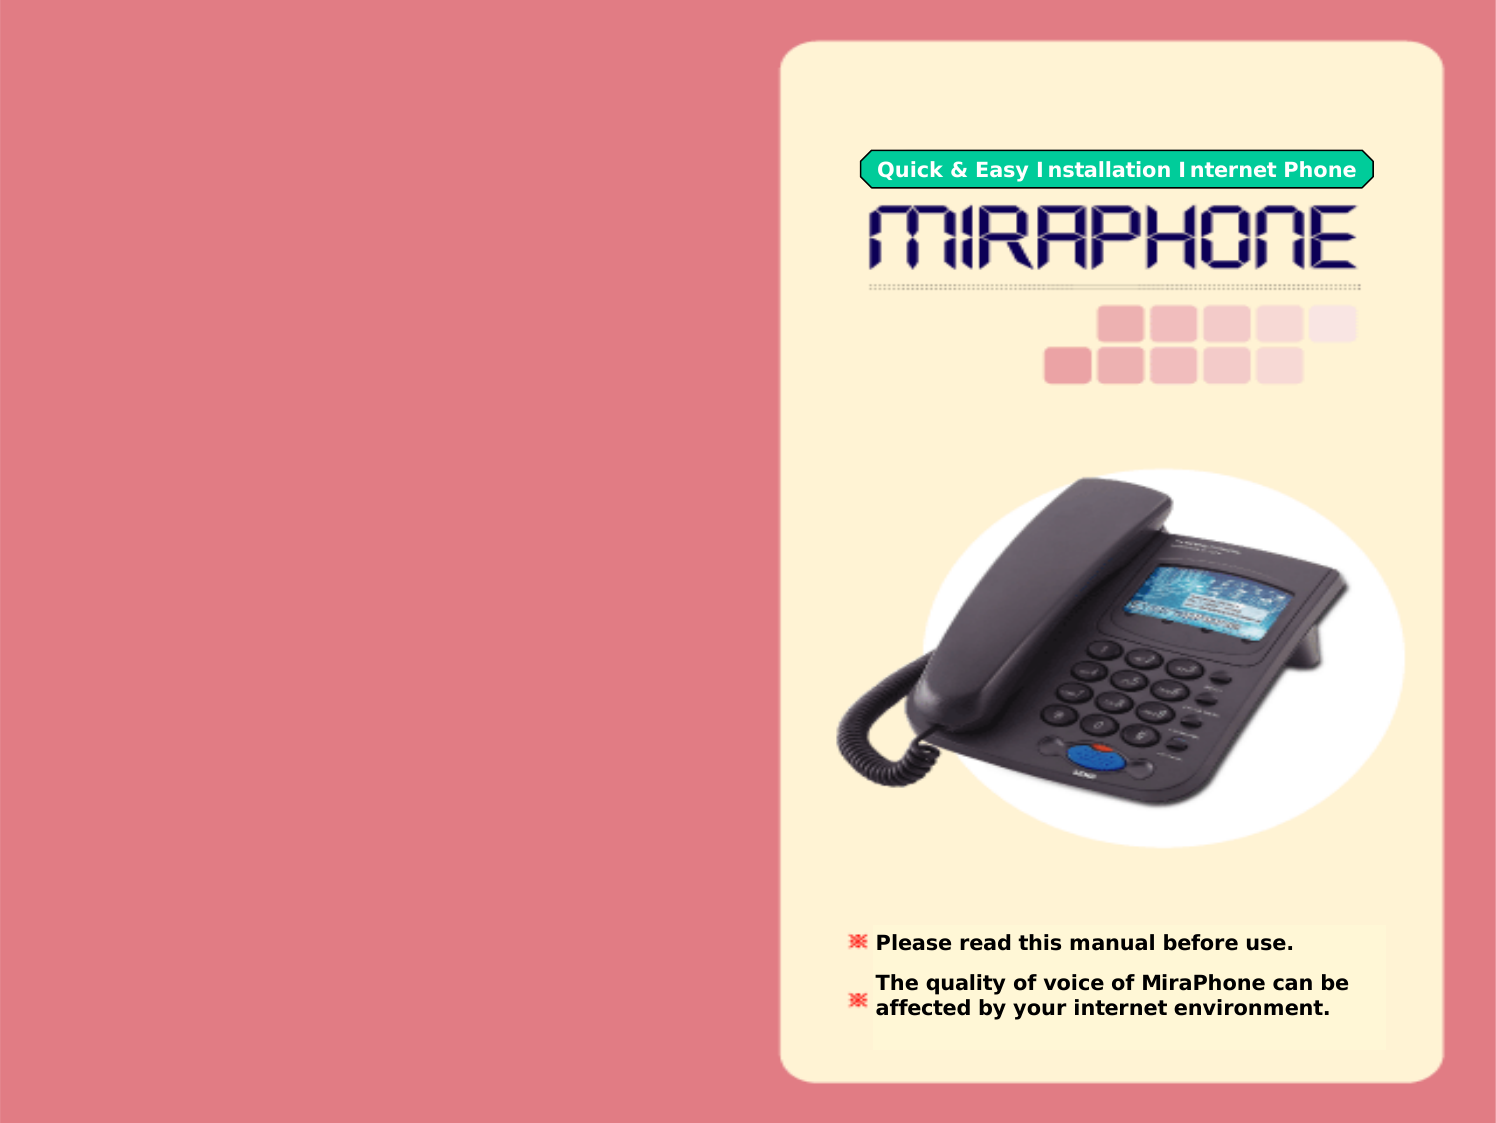 Quick & Easy Installation Internet PhonePlease read this manual before use.The quality of voice of MiraPhone can be affected by your internet environment.